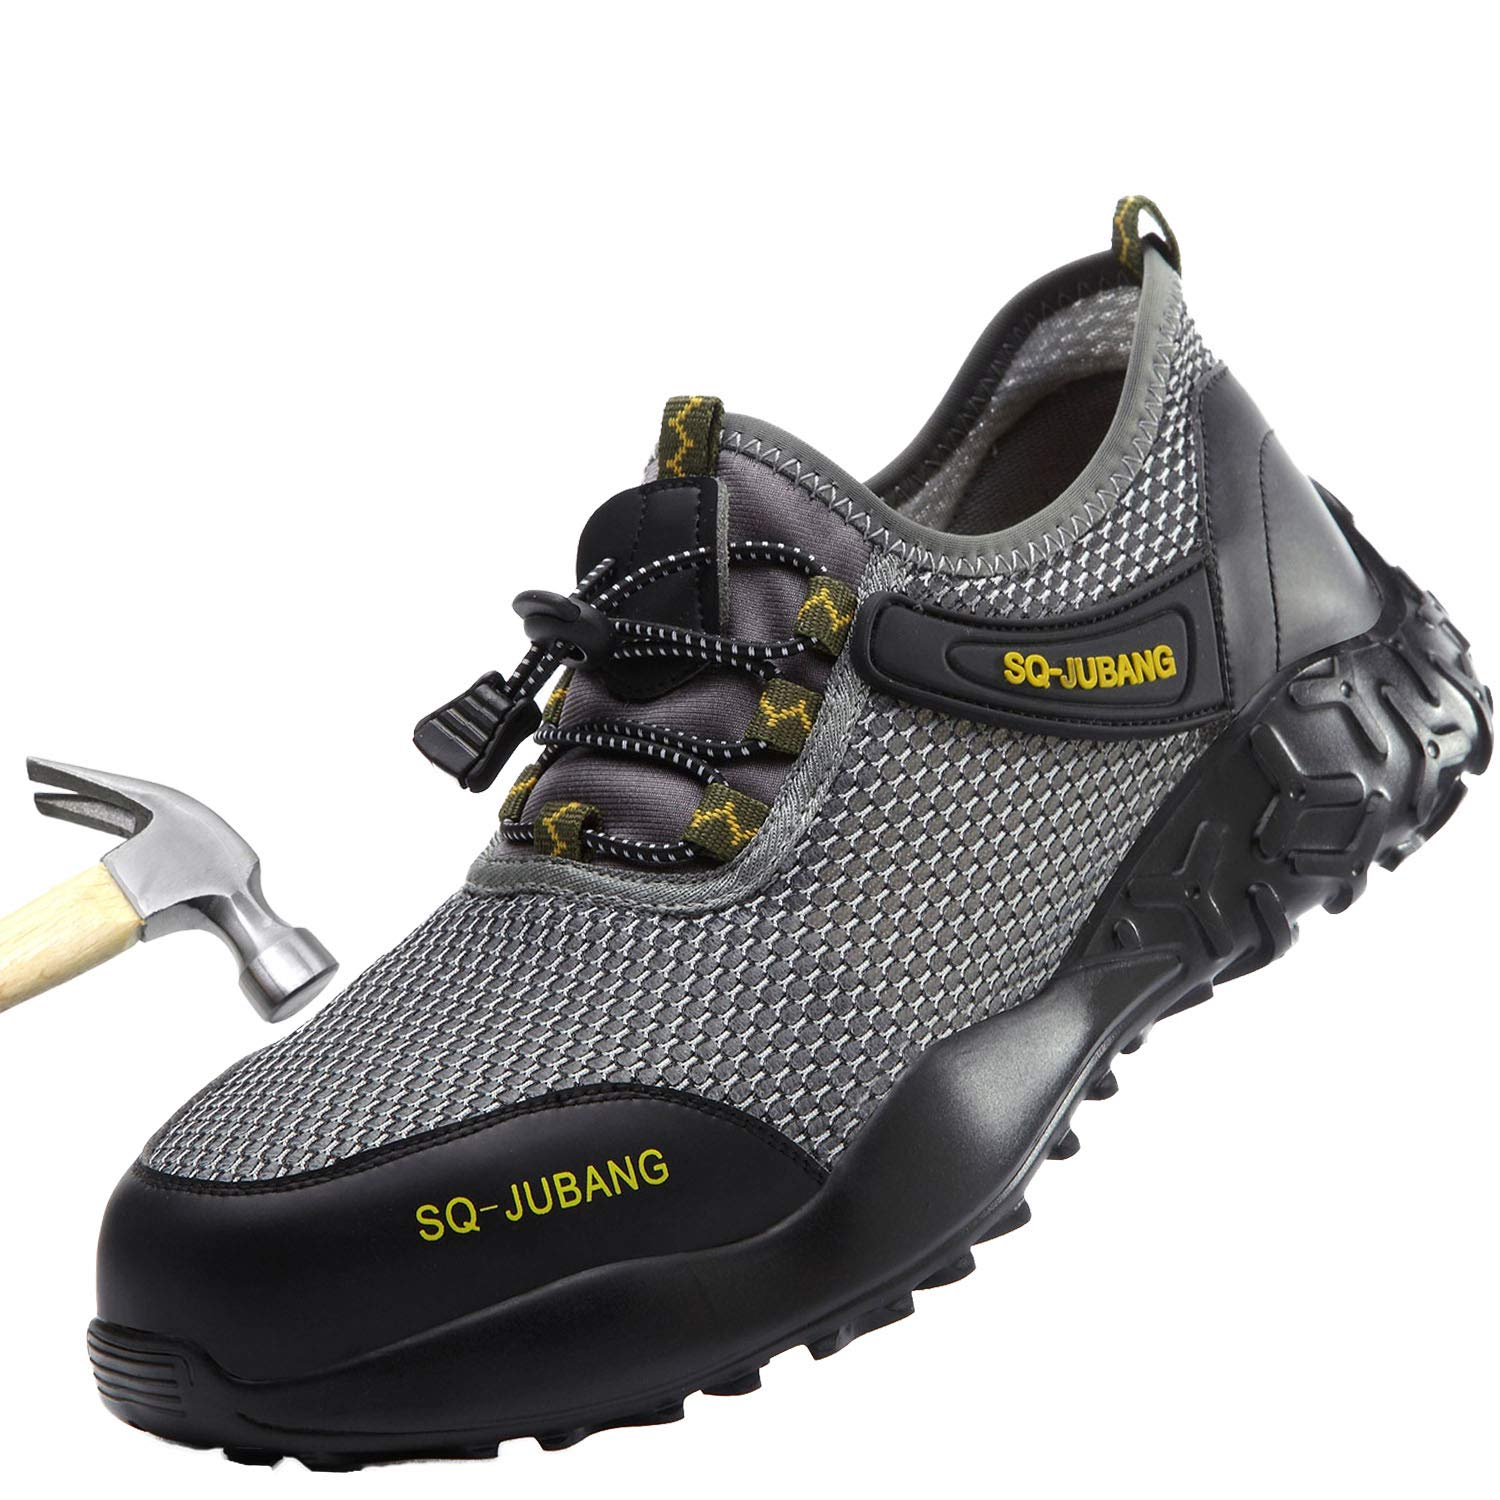 MARITONY Indestructible Shoes Steel Toe Work Shoes for Men and Women Non Slip Safety Shoes Lightweight Breathable Industrial Construction Shoe